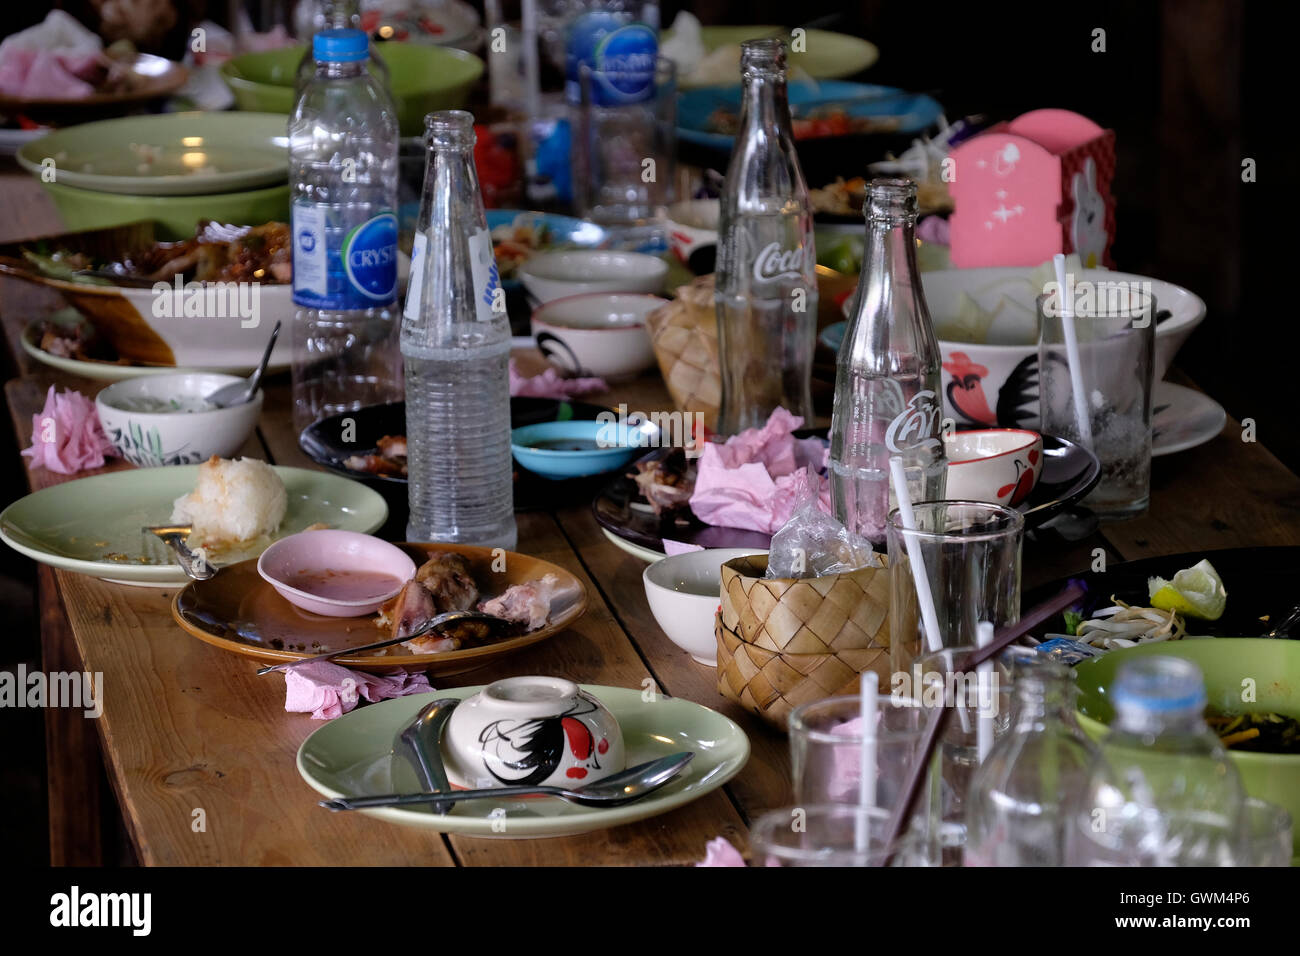 Dirty table - Stock Image